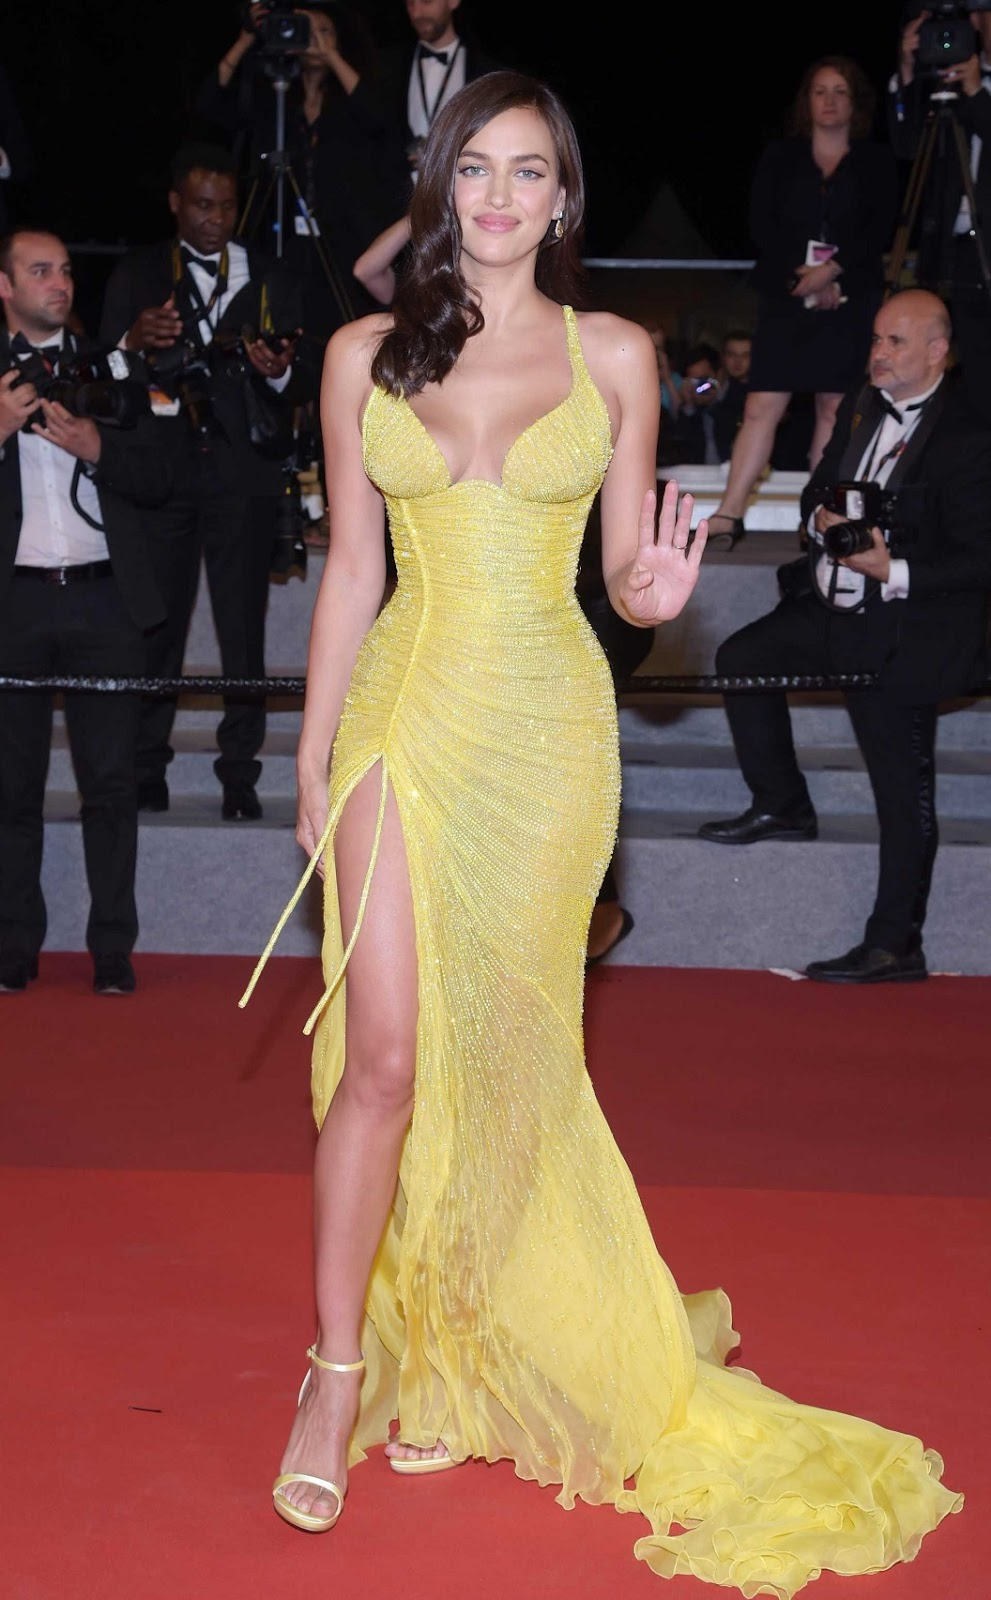 Irina Shayk Bares Curves And Cleavage At The 70Th Annual -1351